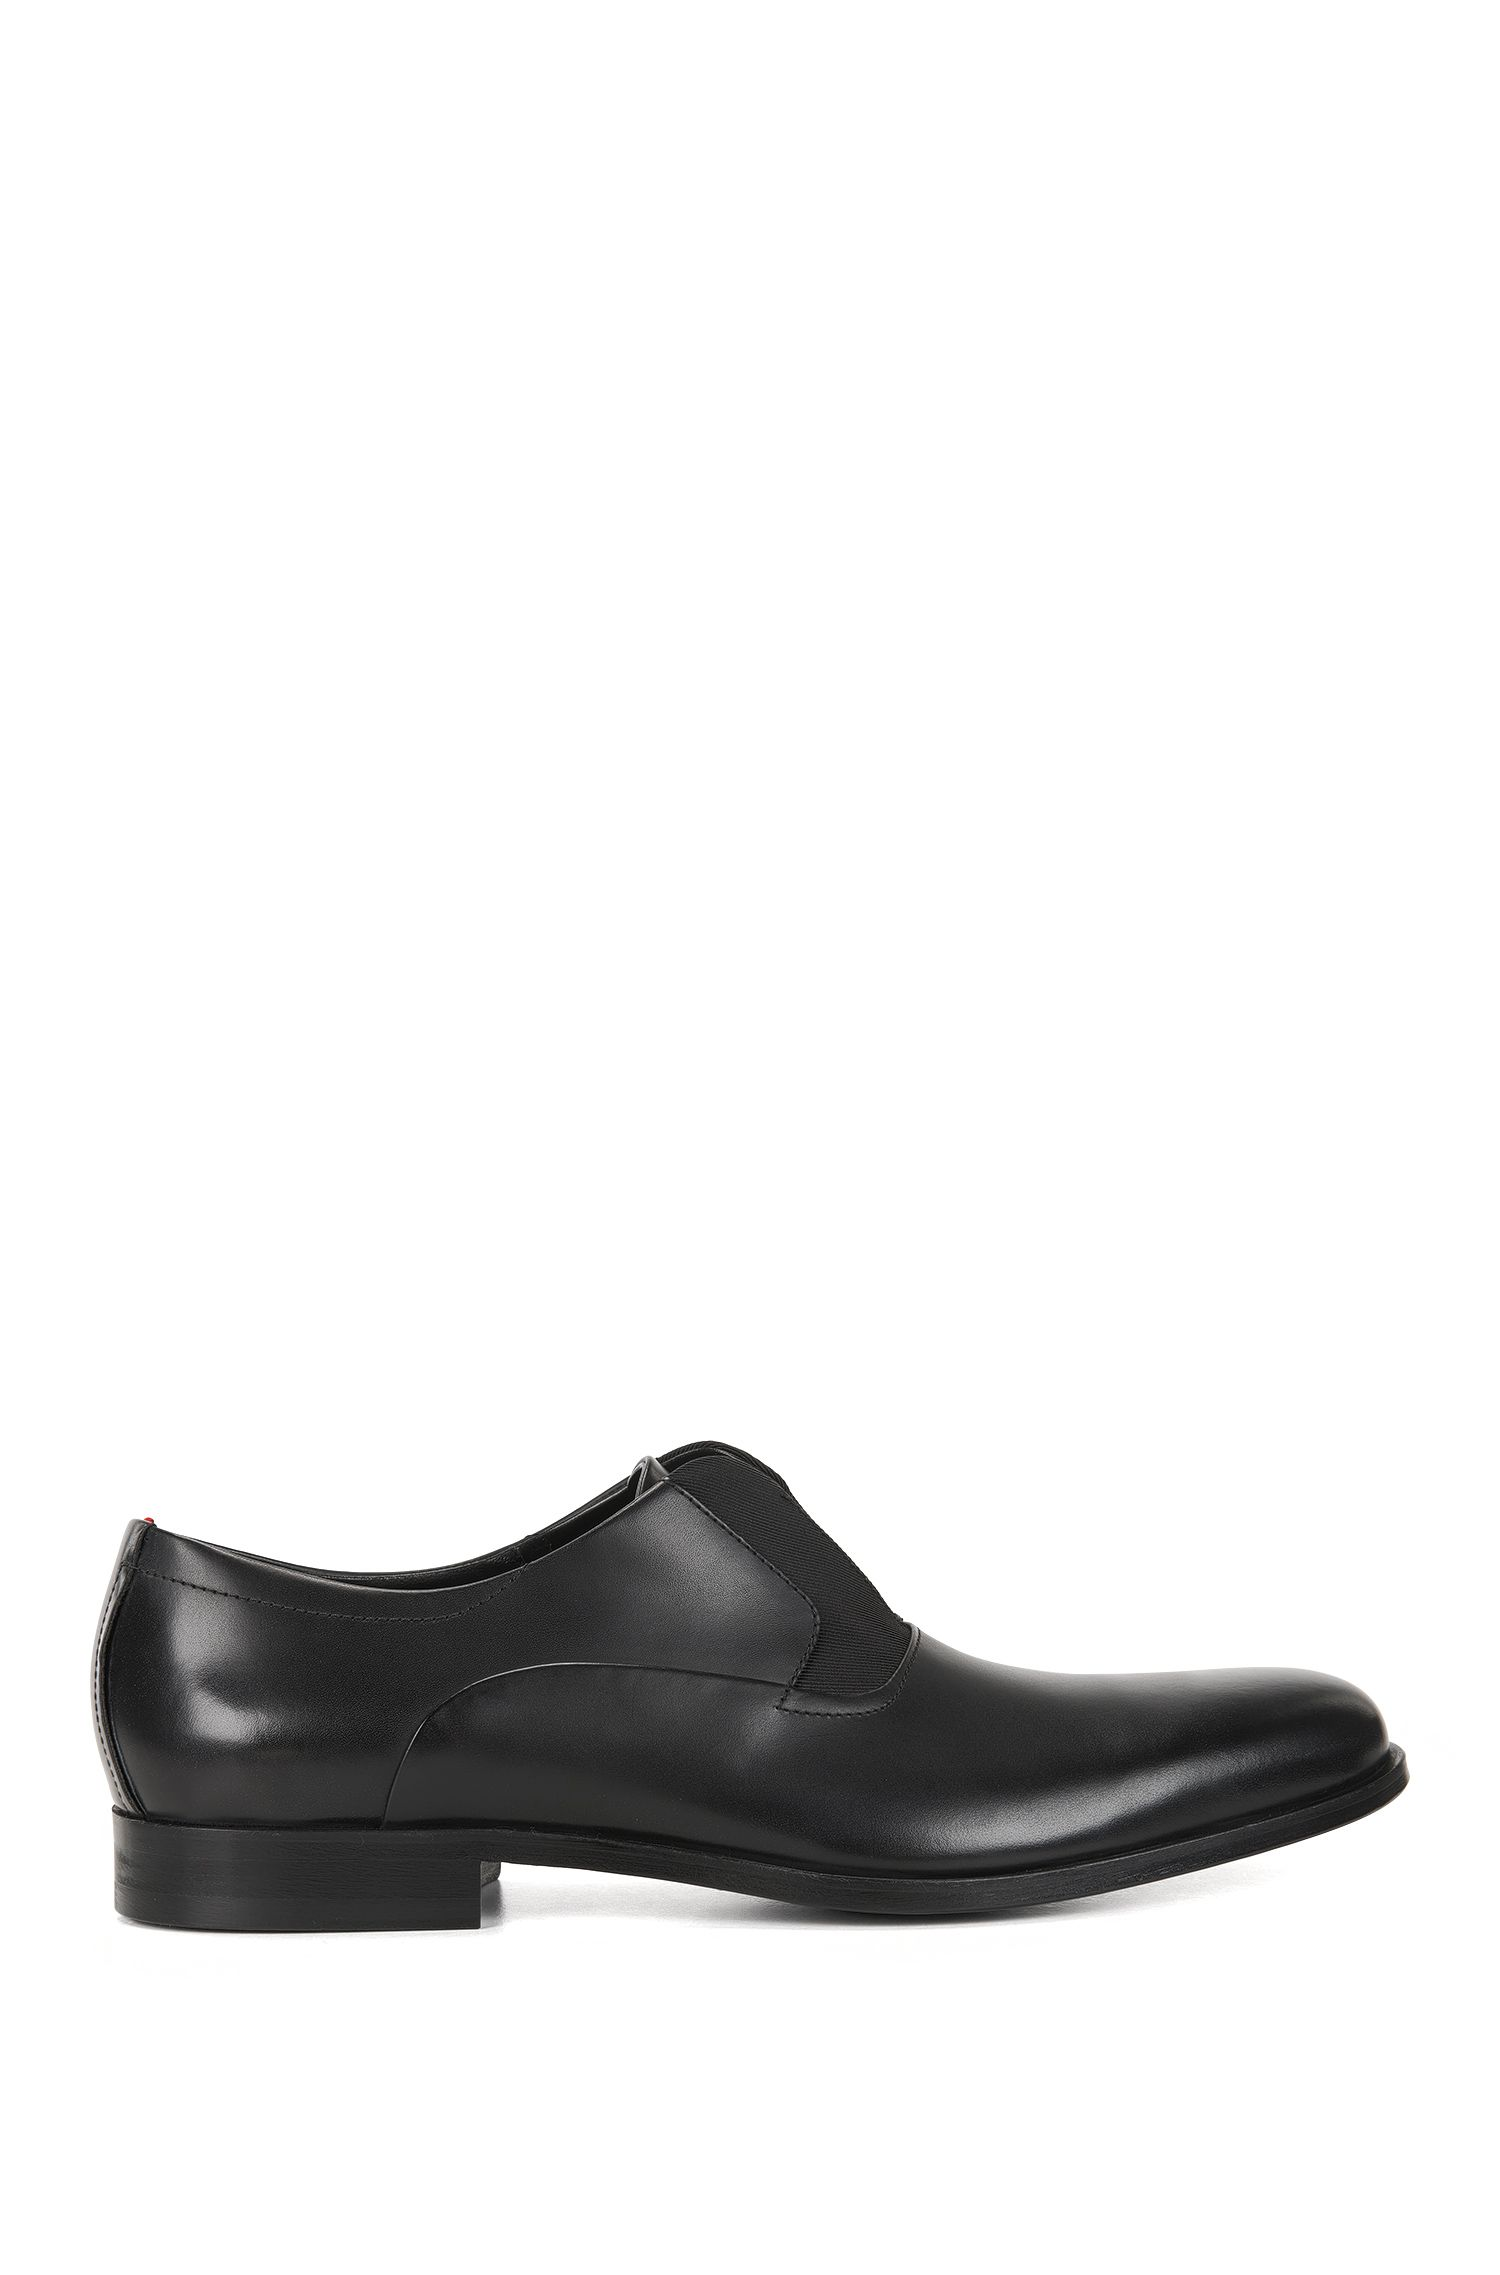 Scarpe Oxford slip-on in pelle